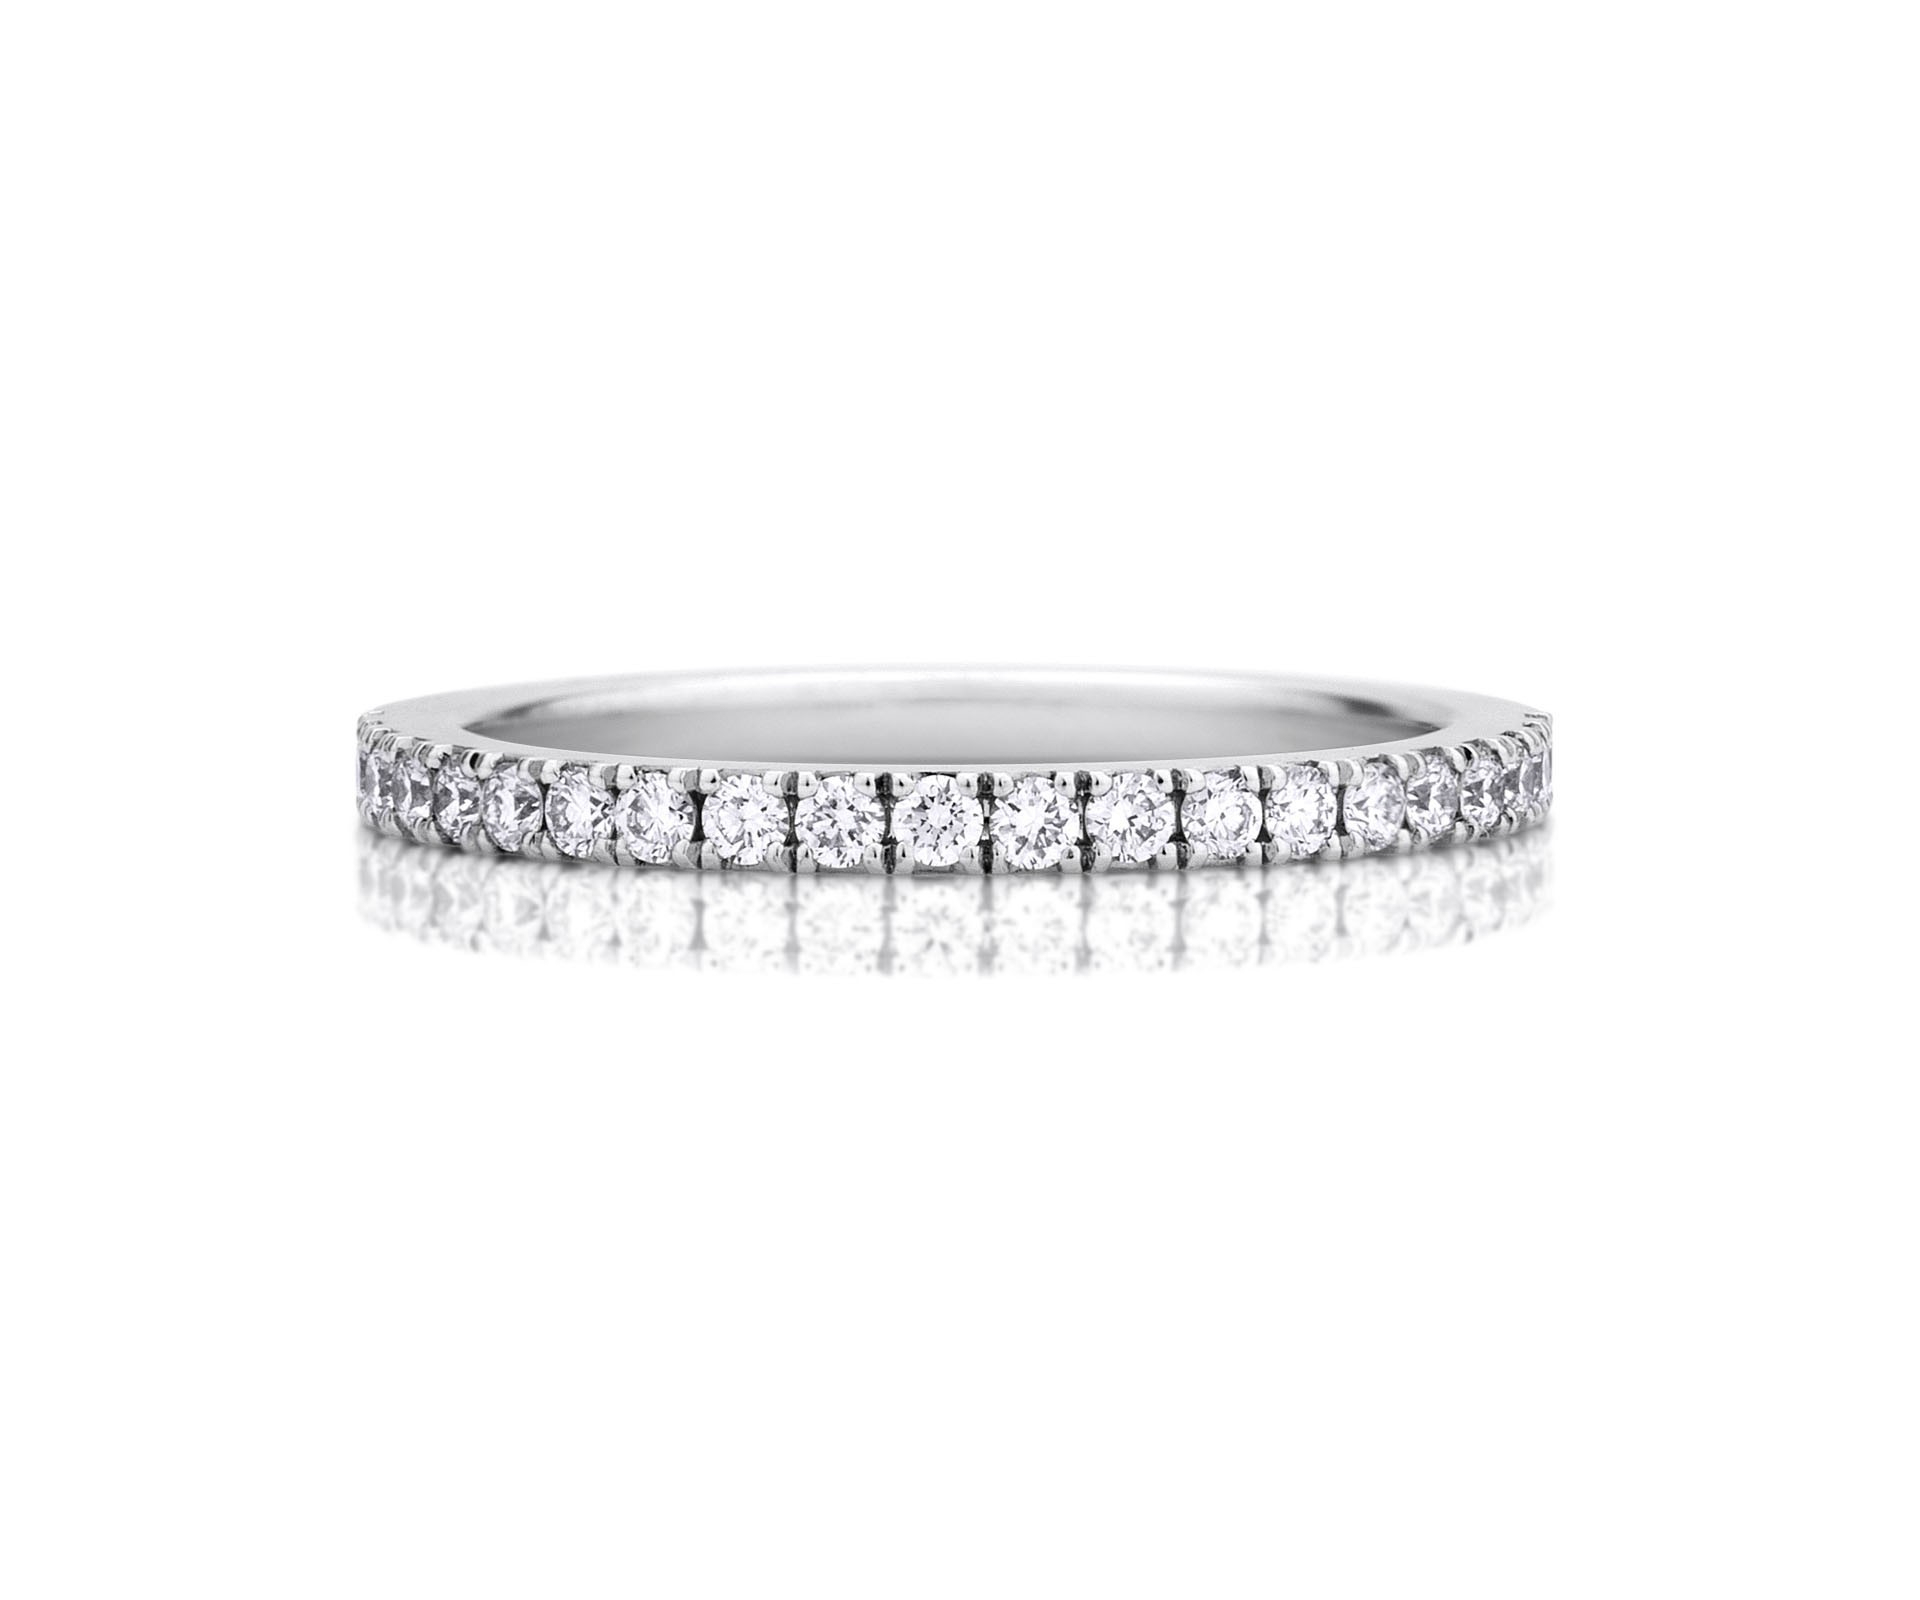 Diamond Wedding Rings & Bands | De Beers Inside Most Recently Released Full Micropavé Diamond Wedding Bands (View 13 of 25)